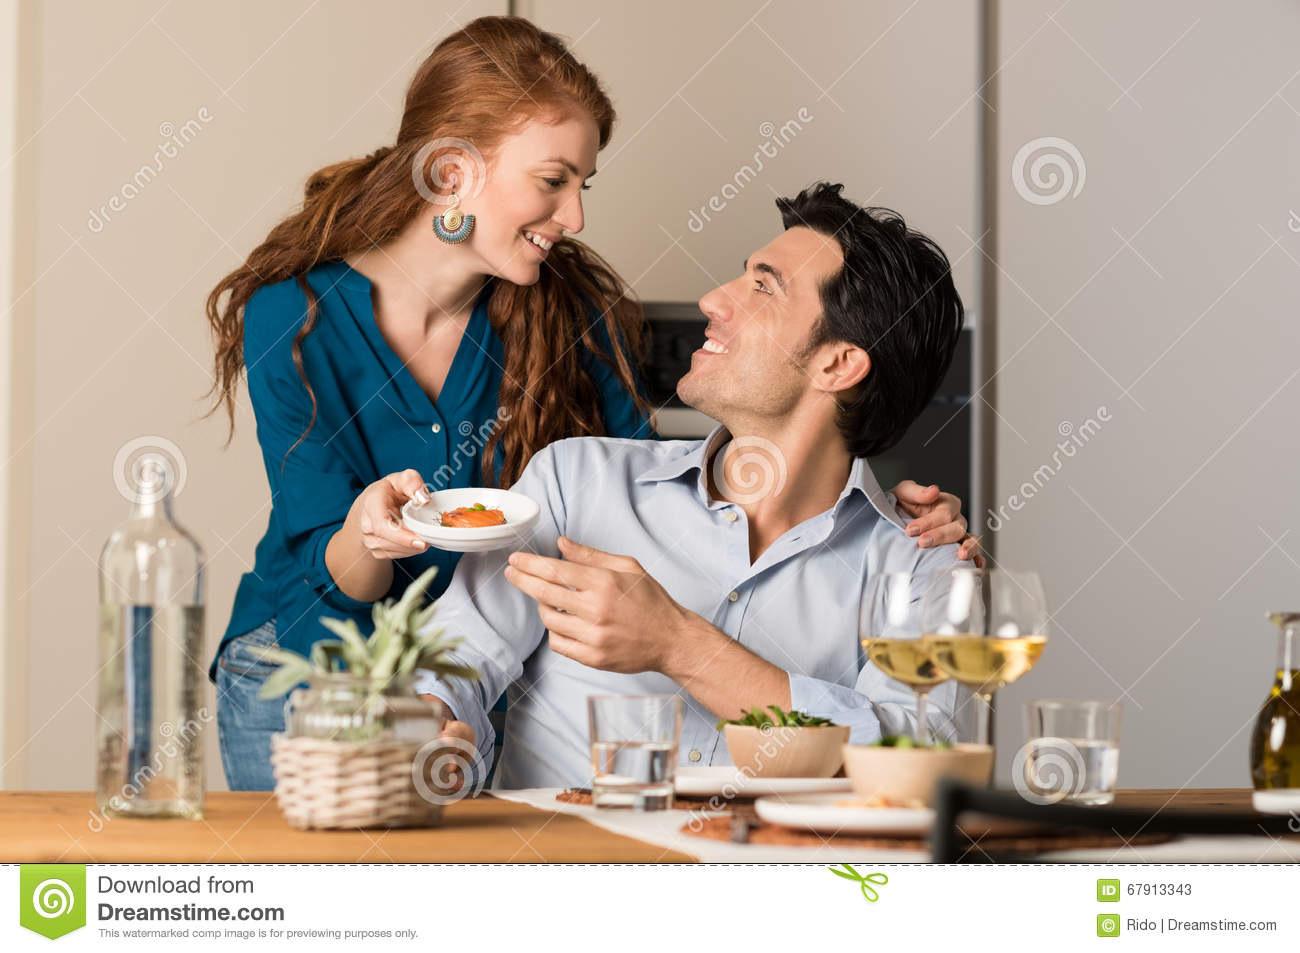 Couple Eating At Home Stock Image Image Of Love Smile 67913343